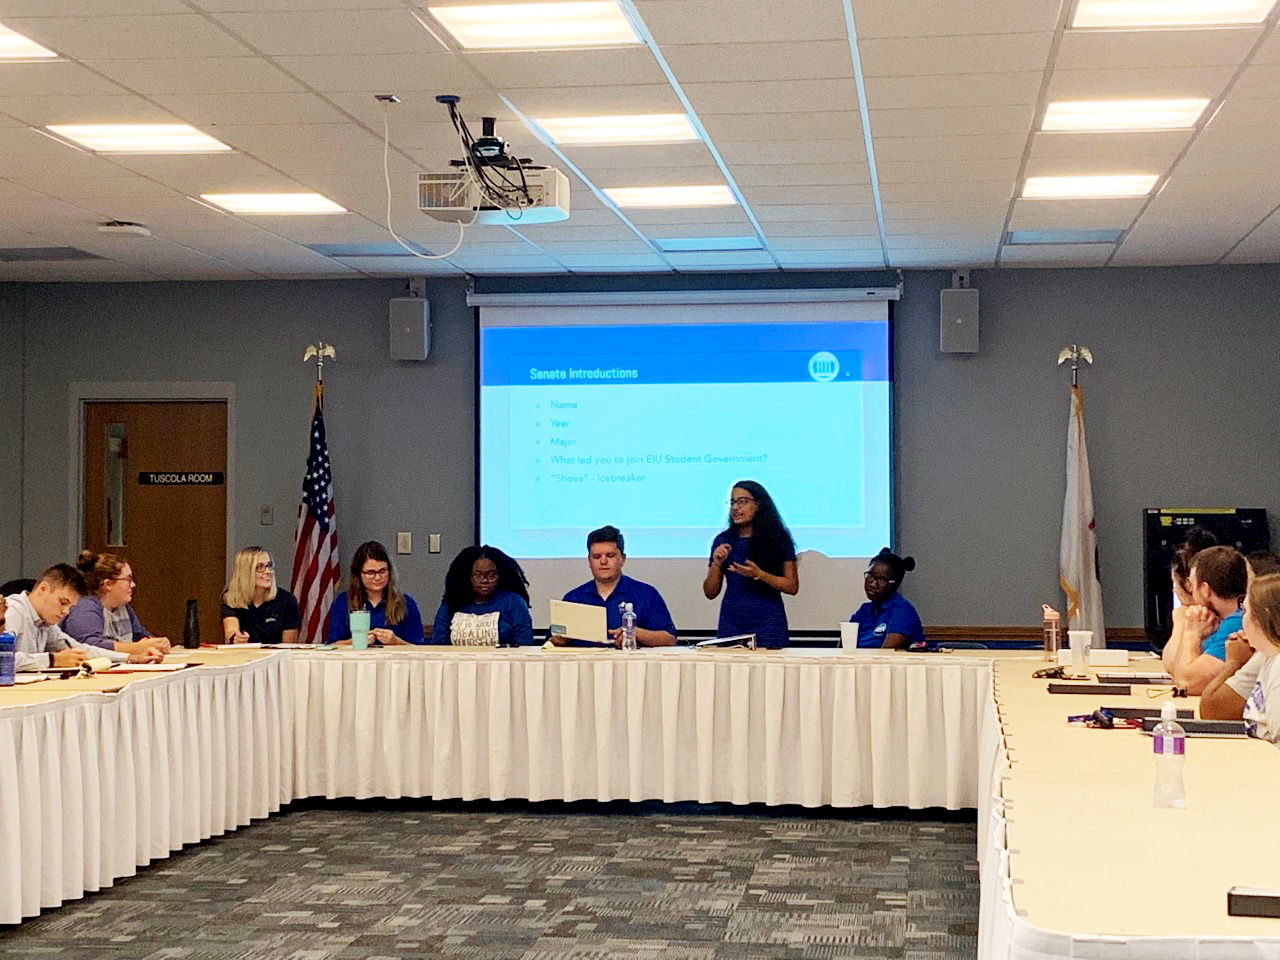 """Student Senate introduce themselves individually by stating their fun facts such as their name, year, major, """"What led you to join EIU Student Governement?"""" and how far have their shoes gone to."""